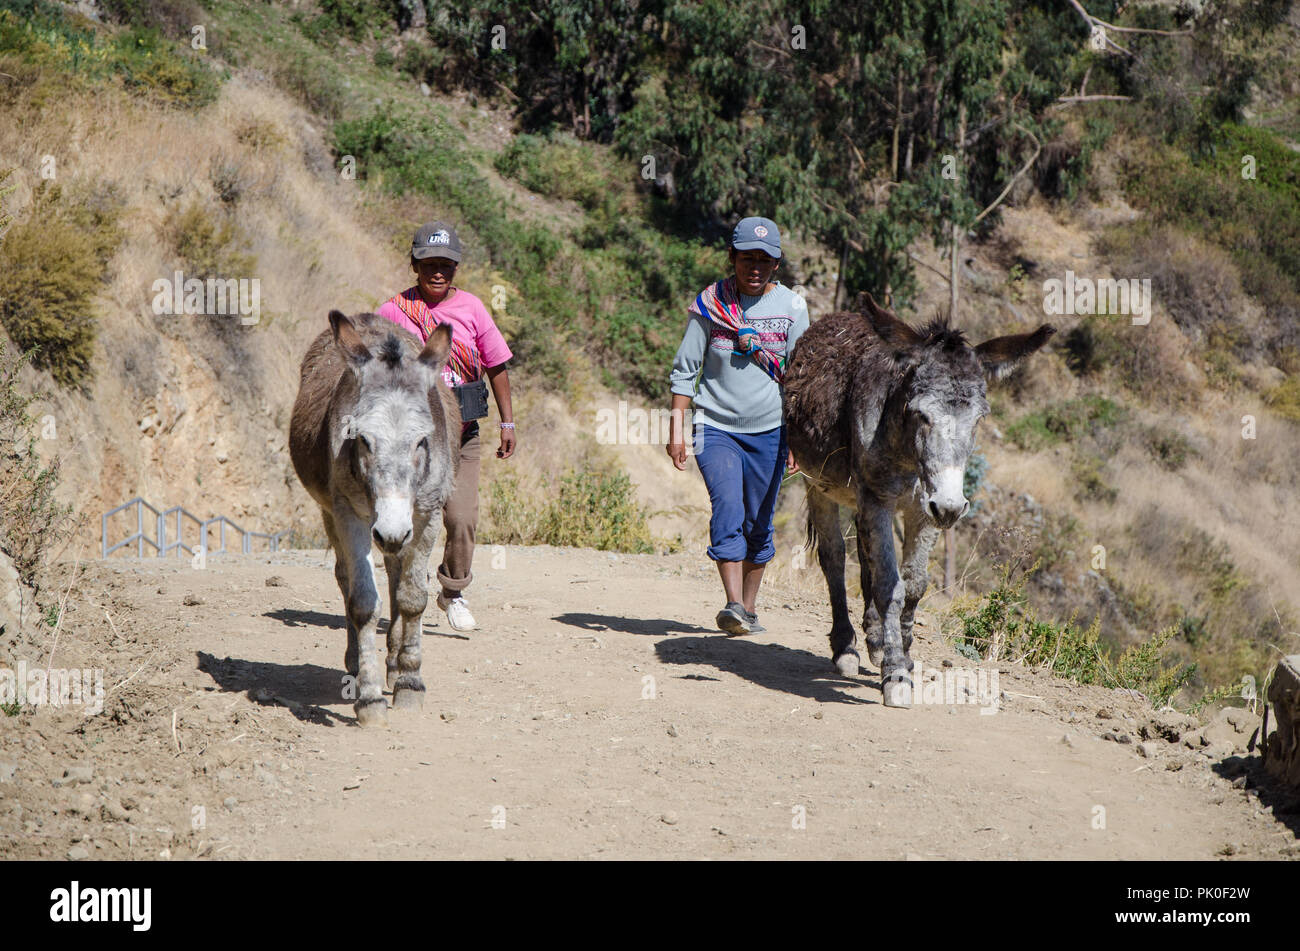 Lima, Peru - 3 SEPTEMBER 2018: Farmers and citizens in the Marcahuasi mountains. Two Andean women walking in the mountains with two cargo donkeys - Stock Image